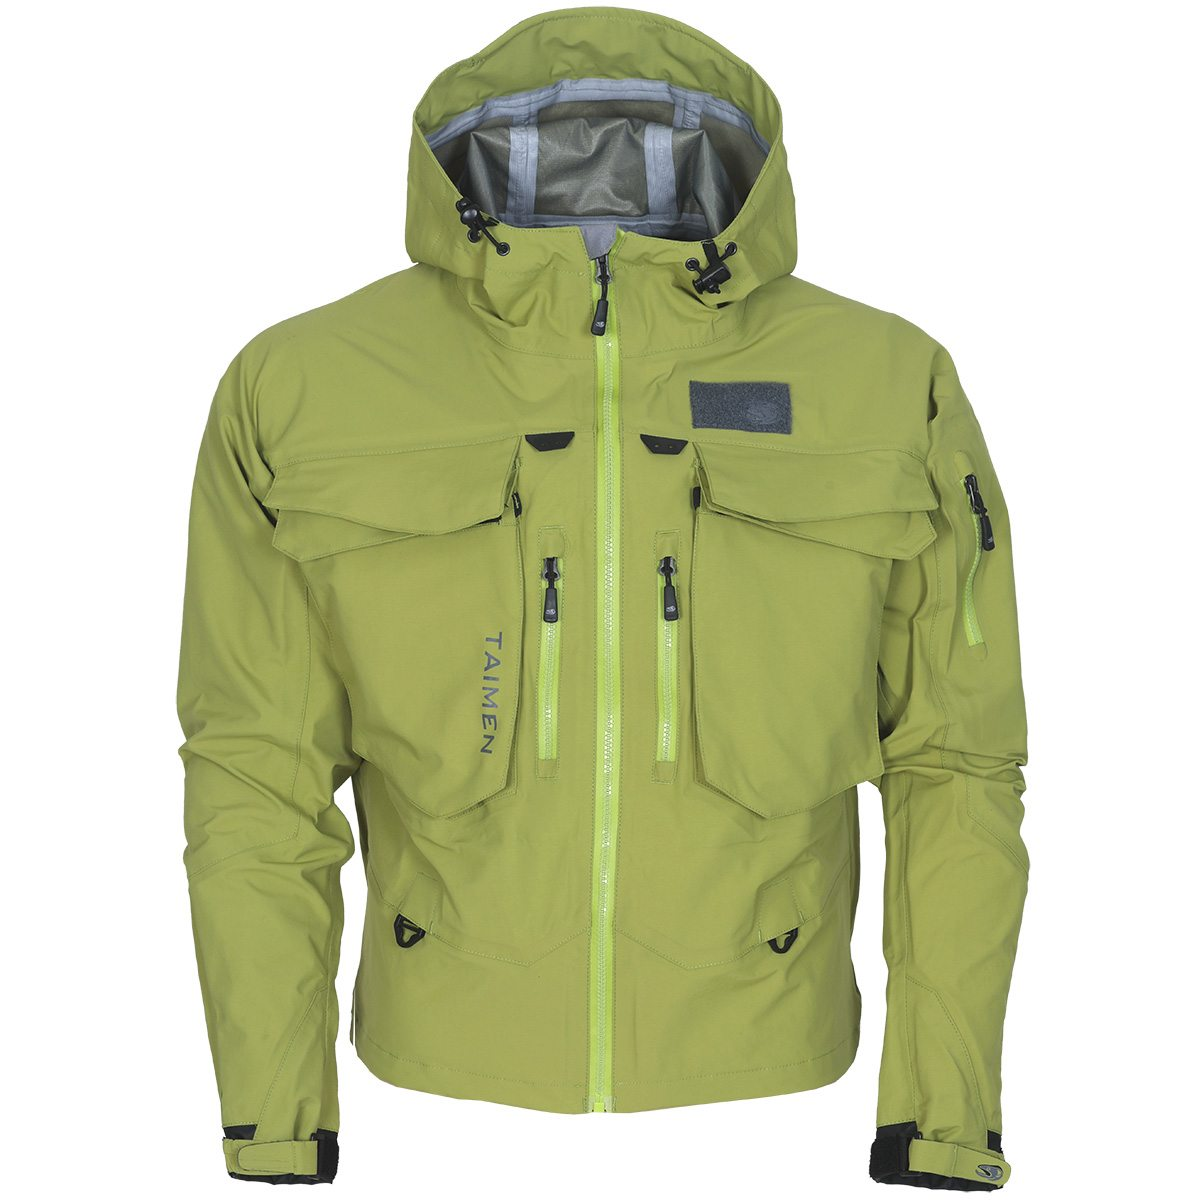 Taimen Ponoy Wading Jacket - Golden Lime